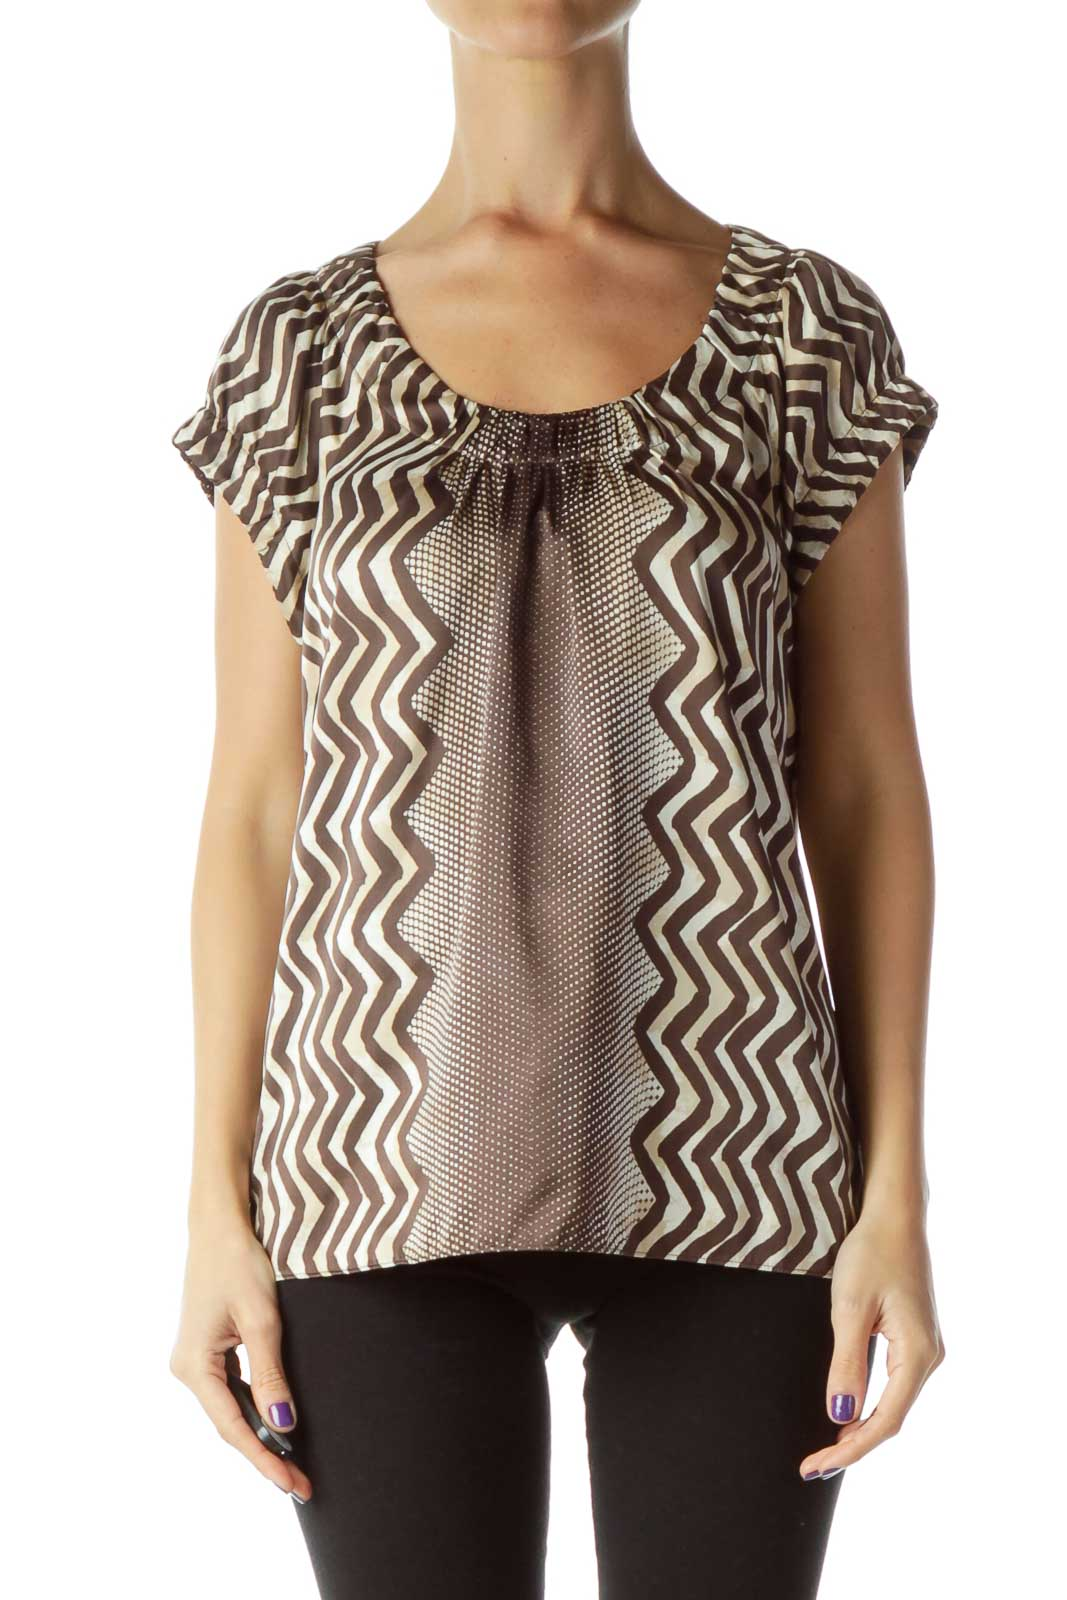 Brown Cream Zig Zag Dotted Top Front